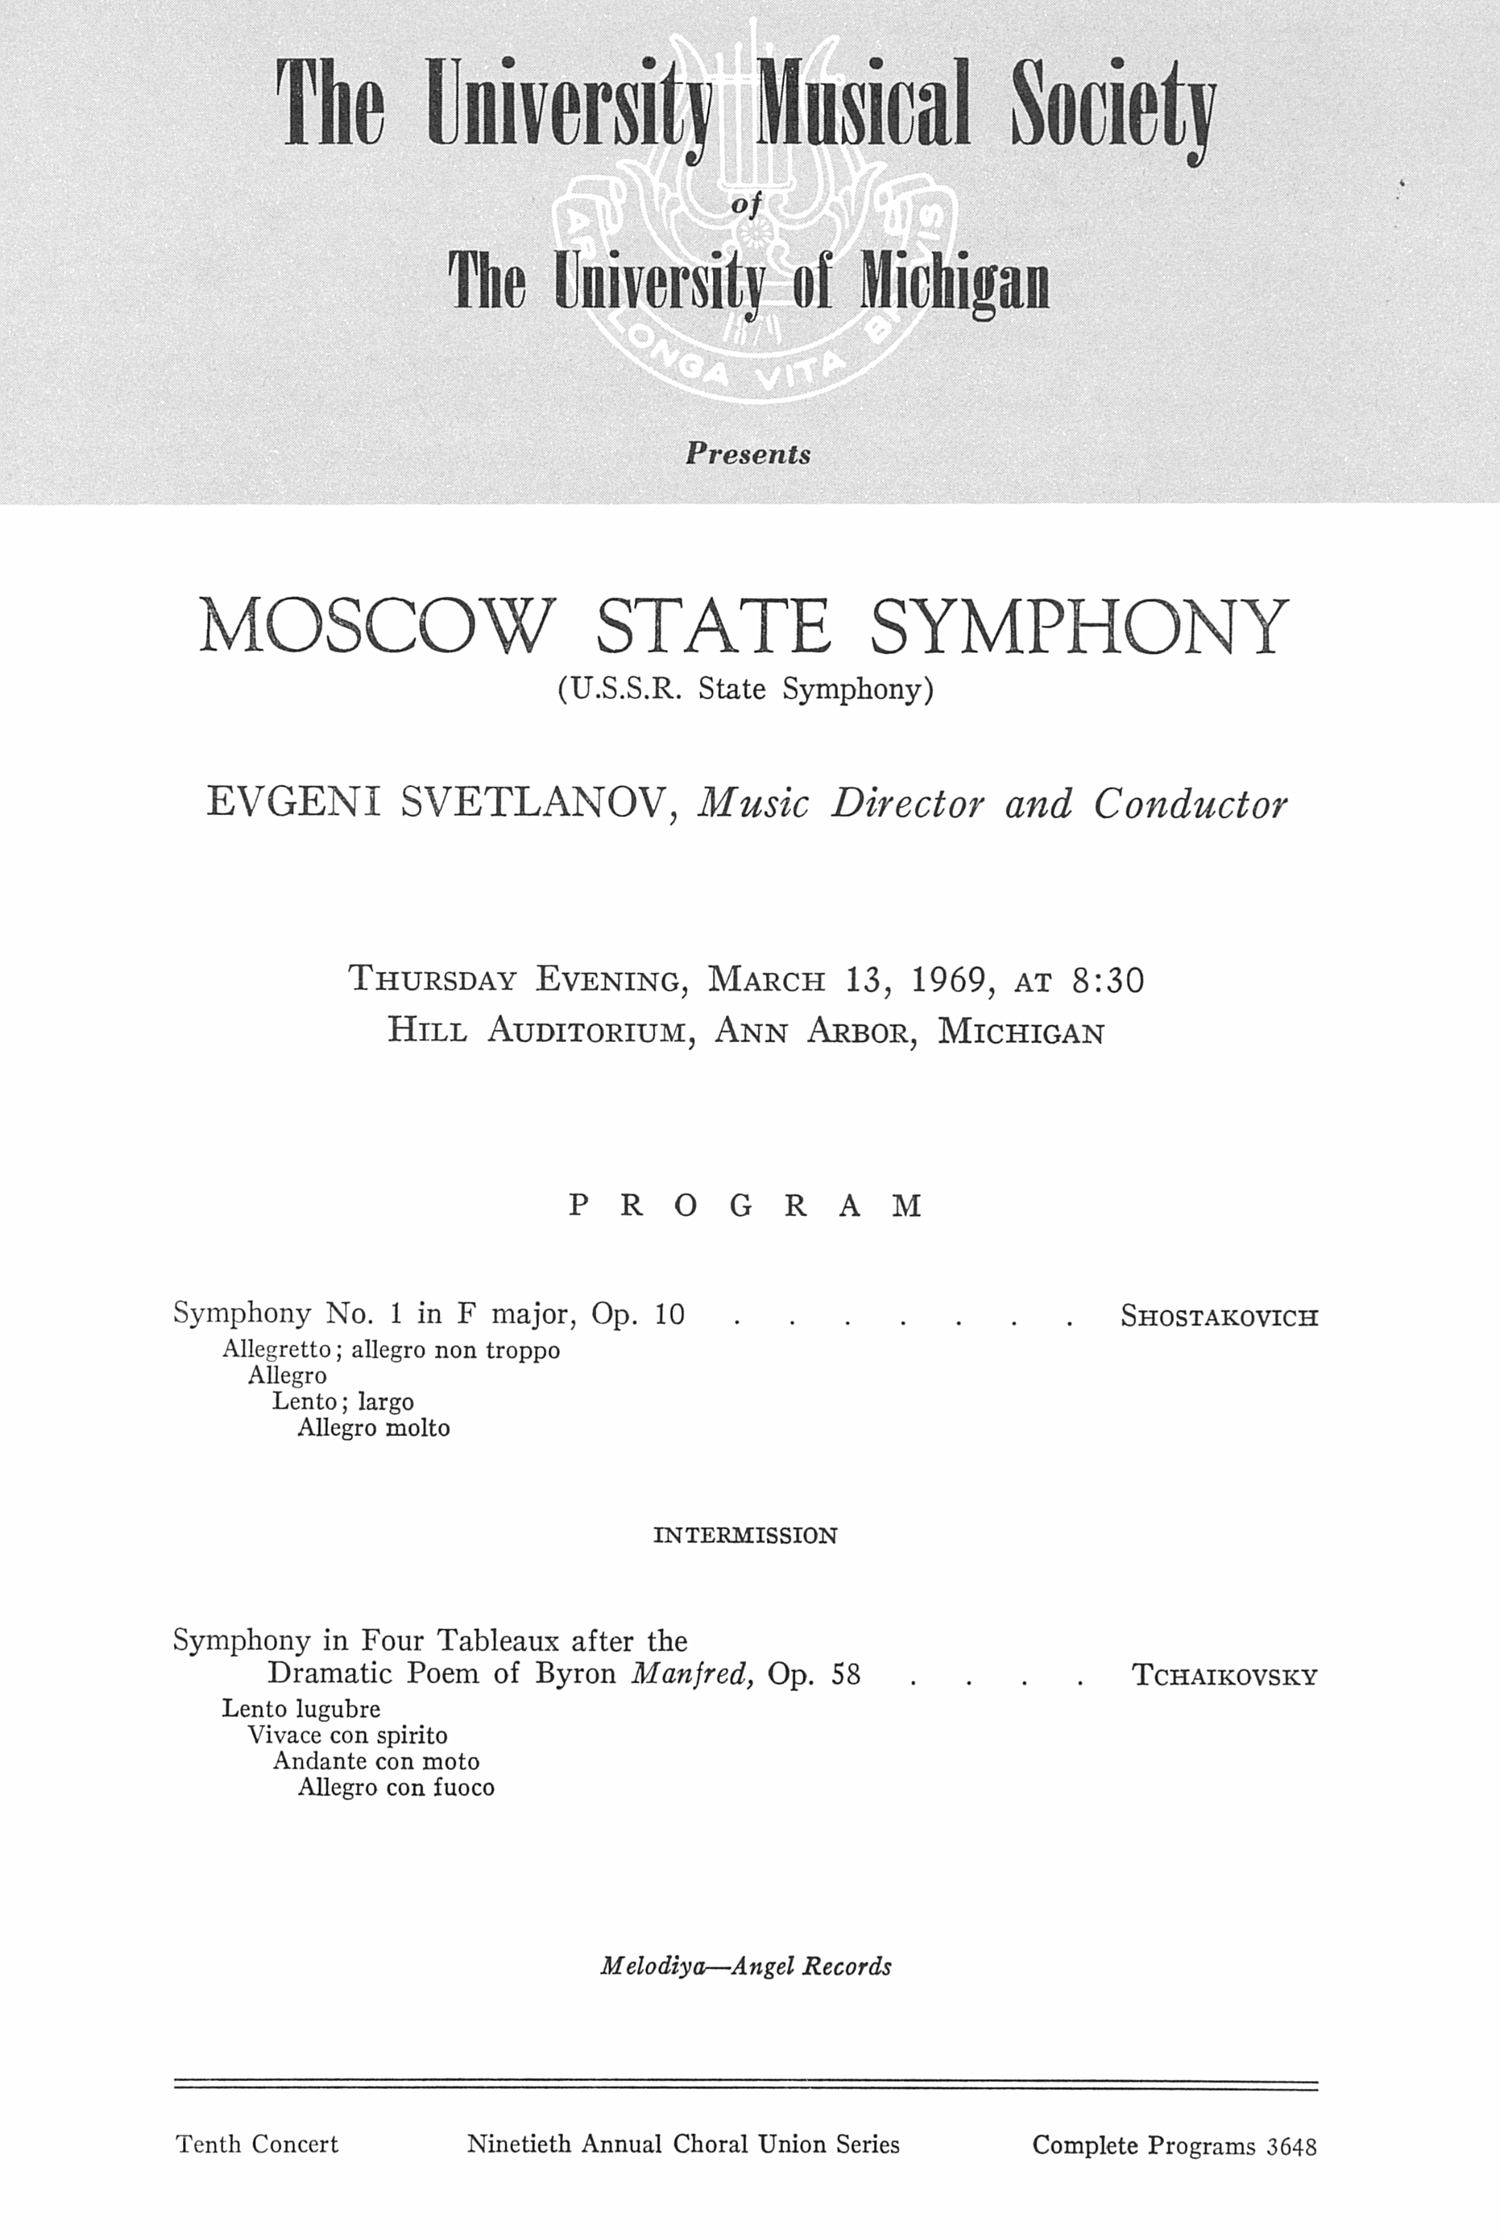 UMS Concert Program, March 13, 1969: Moscow State Symphony --  image